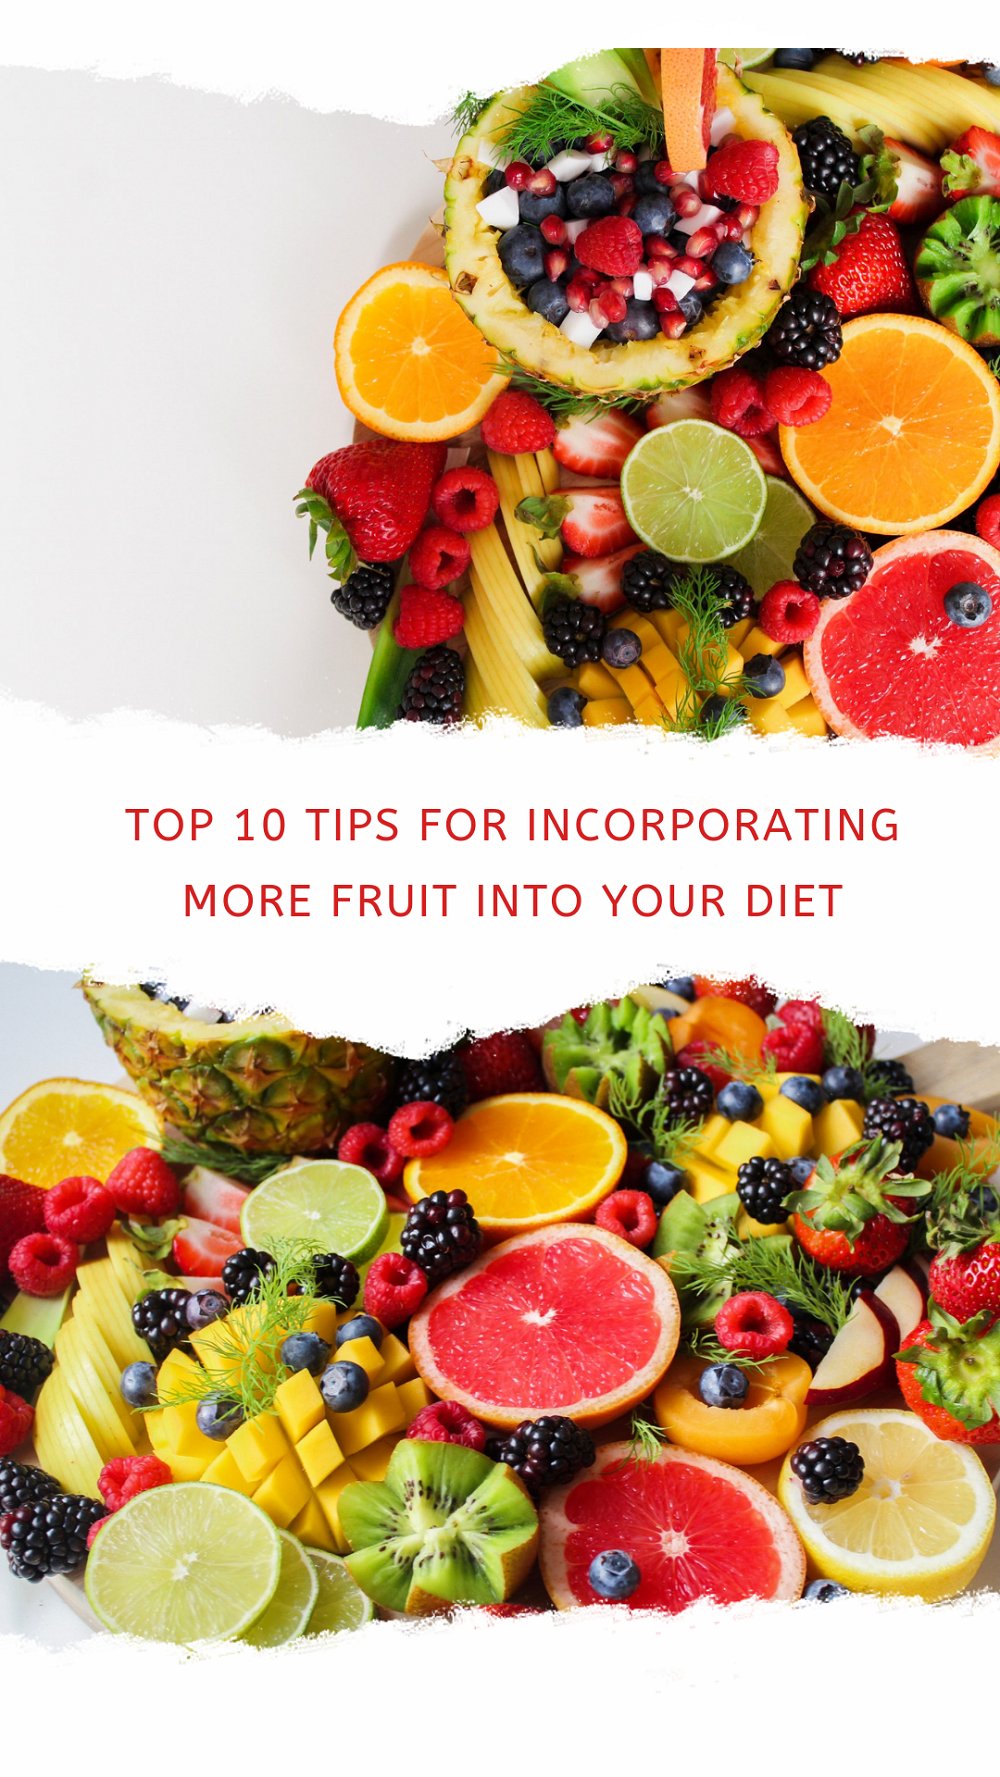 Top 10 Tips For Incorporating More Fruit Into Your Diet